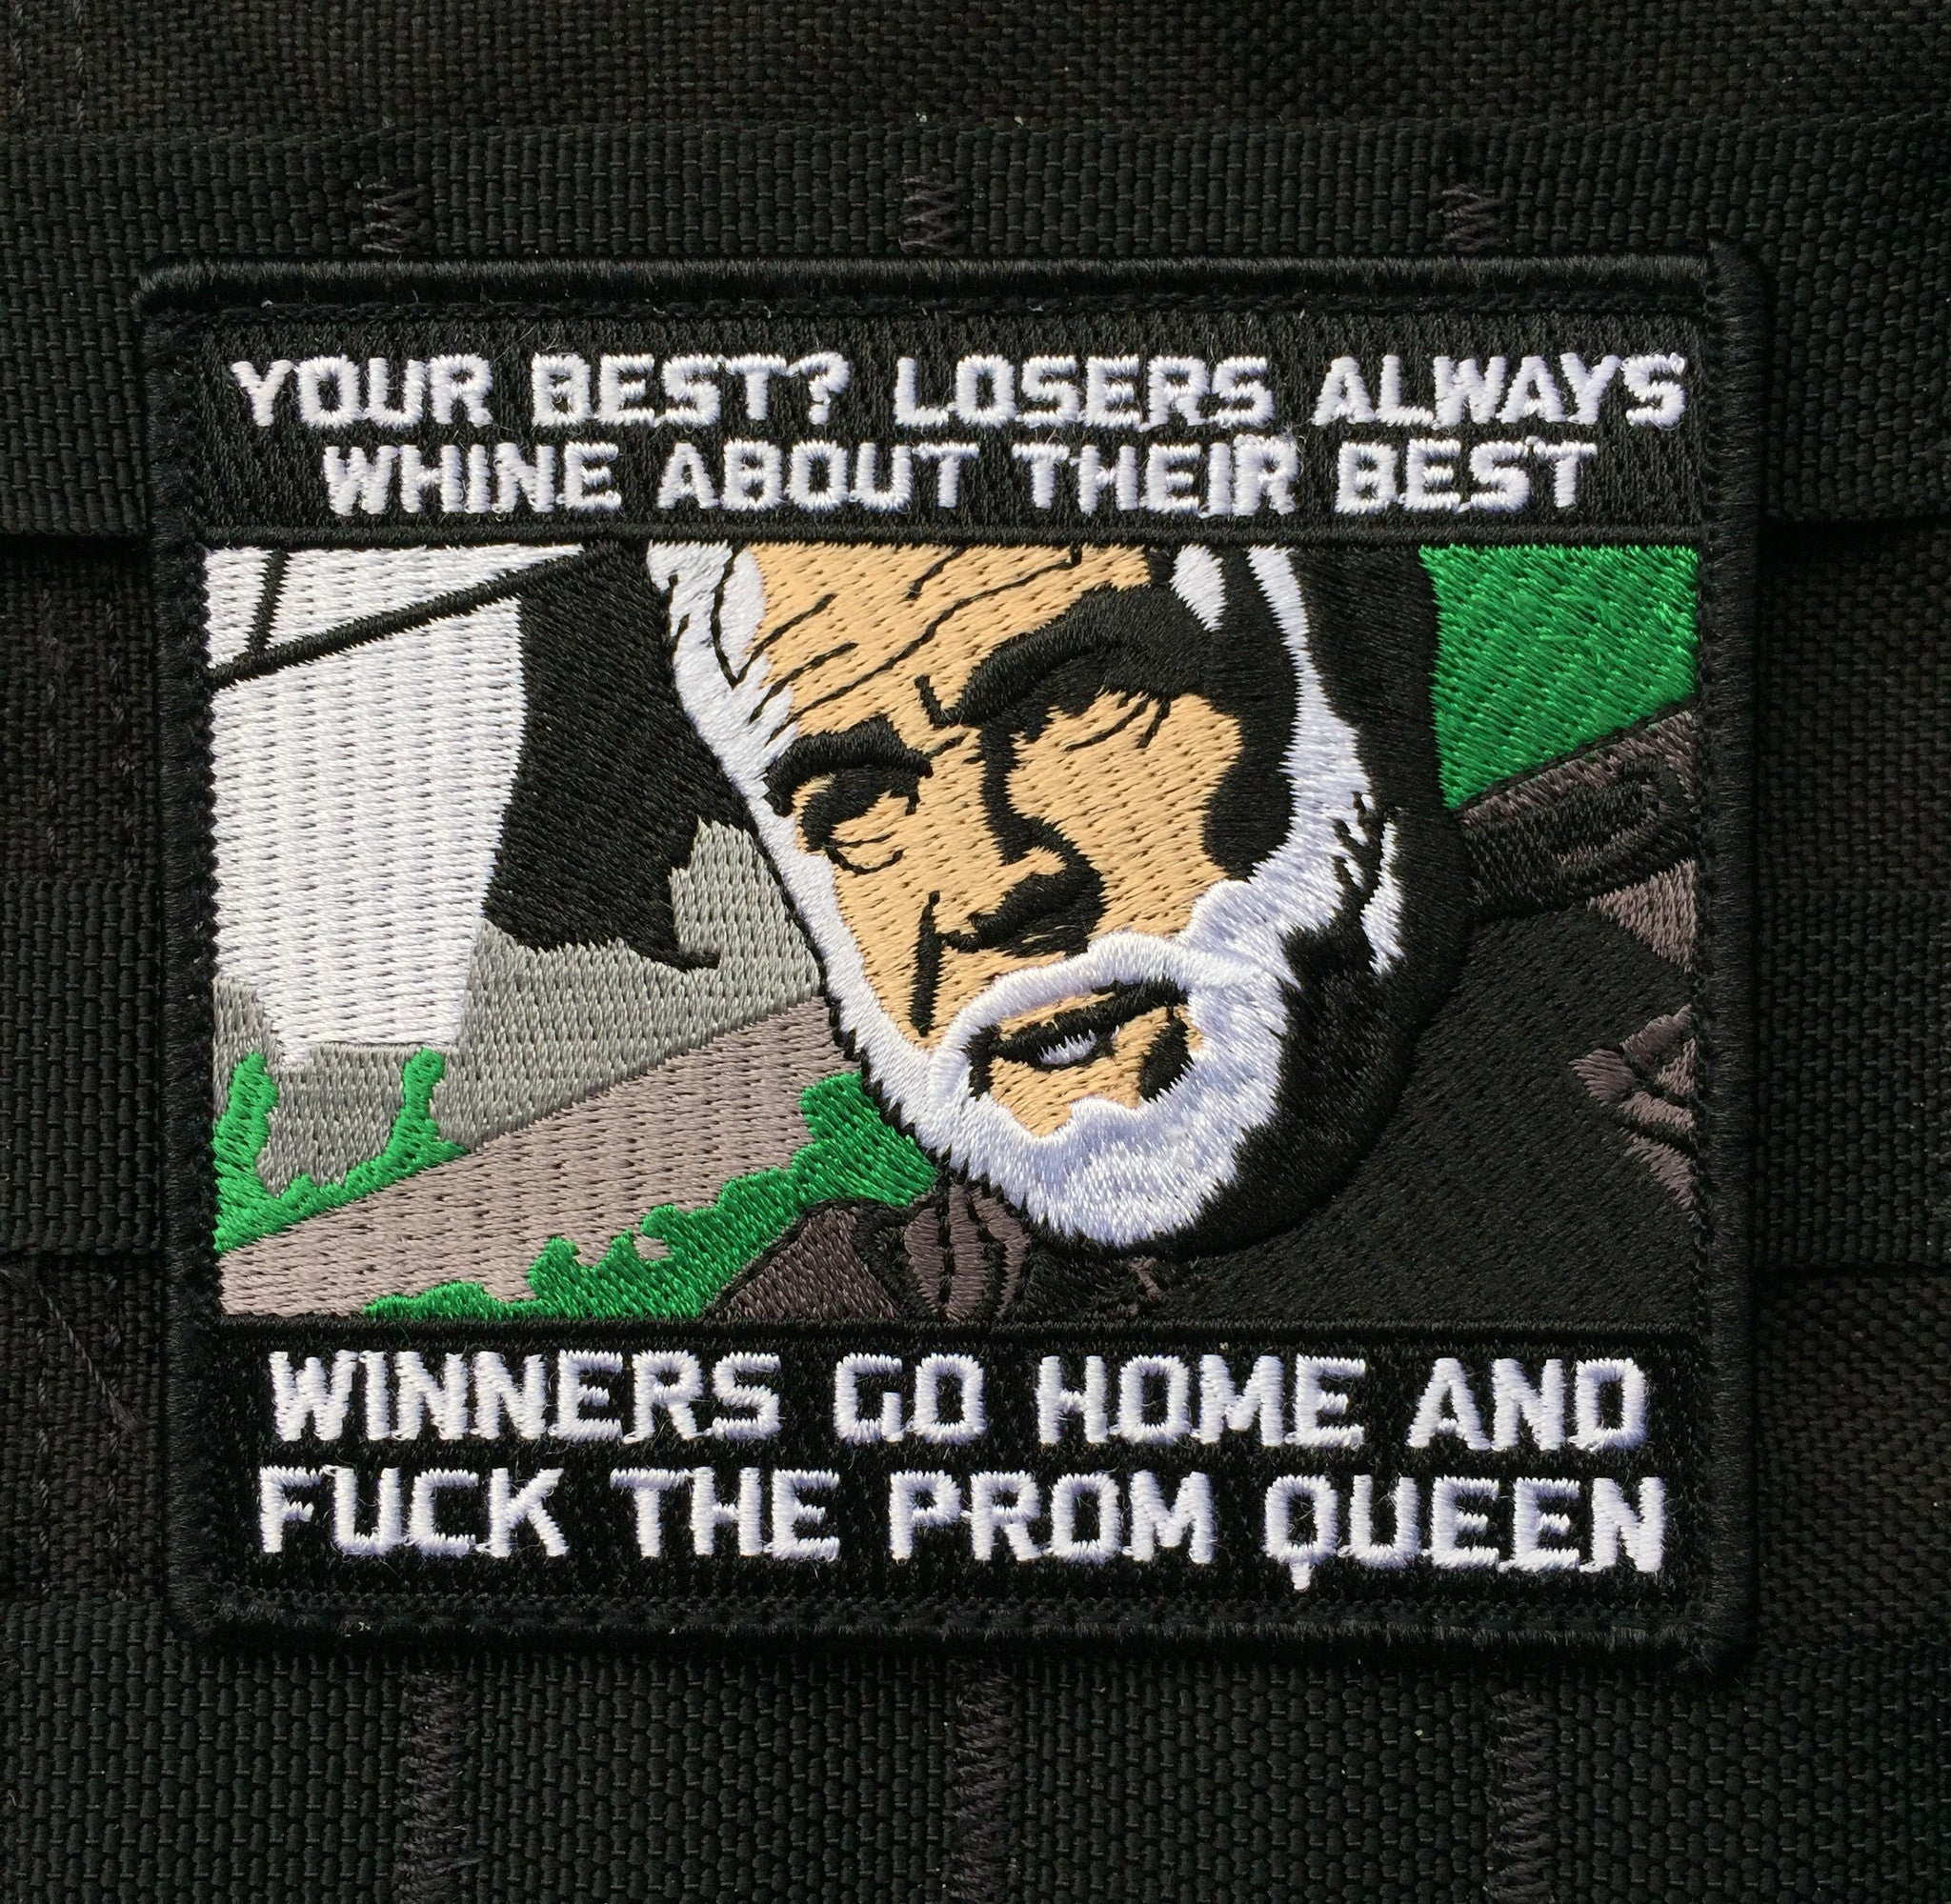 """ALL NEW"" THE ROCK ""LOSERS ALWAYS WHINE ABOUT THEIR BEST"" MORALE PATCH"